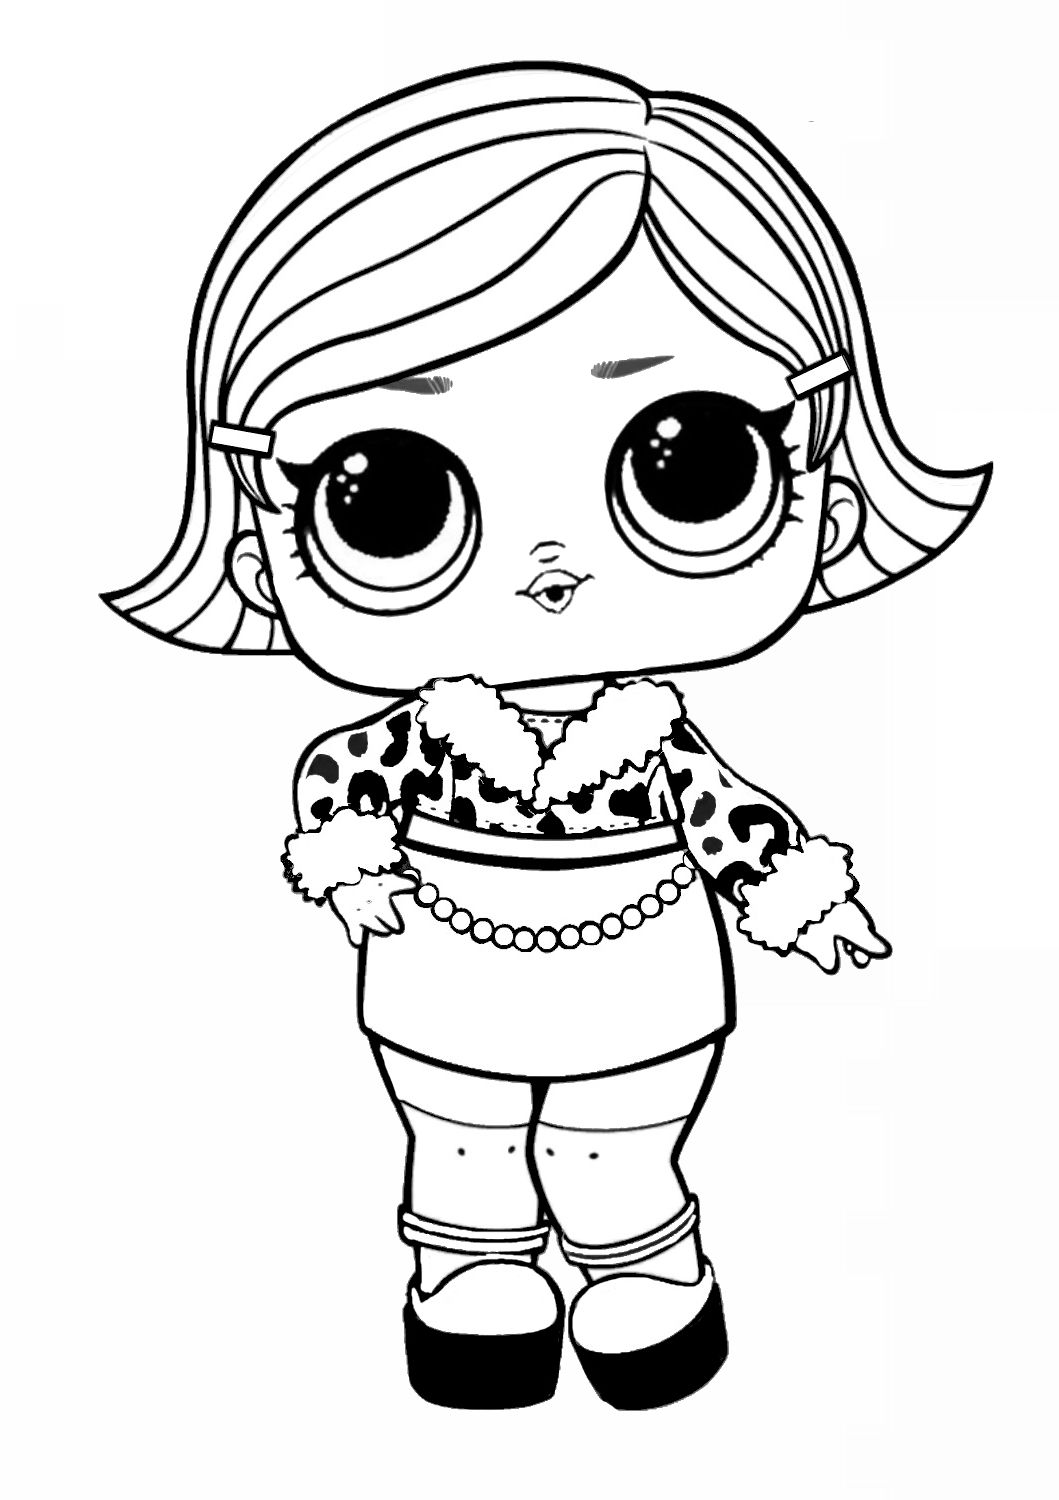 Lol Surprise Coloring Pages Easy In 2021 Lol Coloring Baby Coloring Pages Lol Coloring Pages